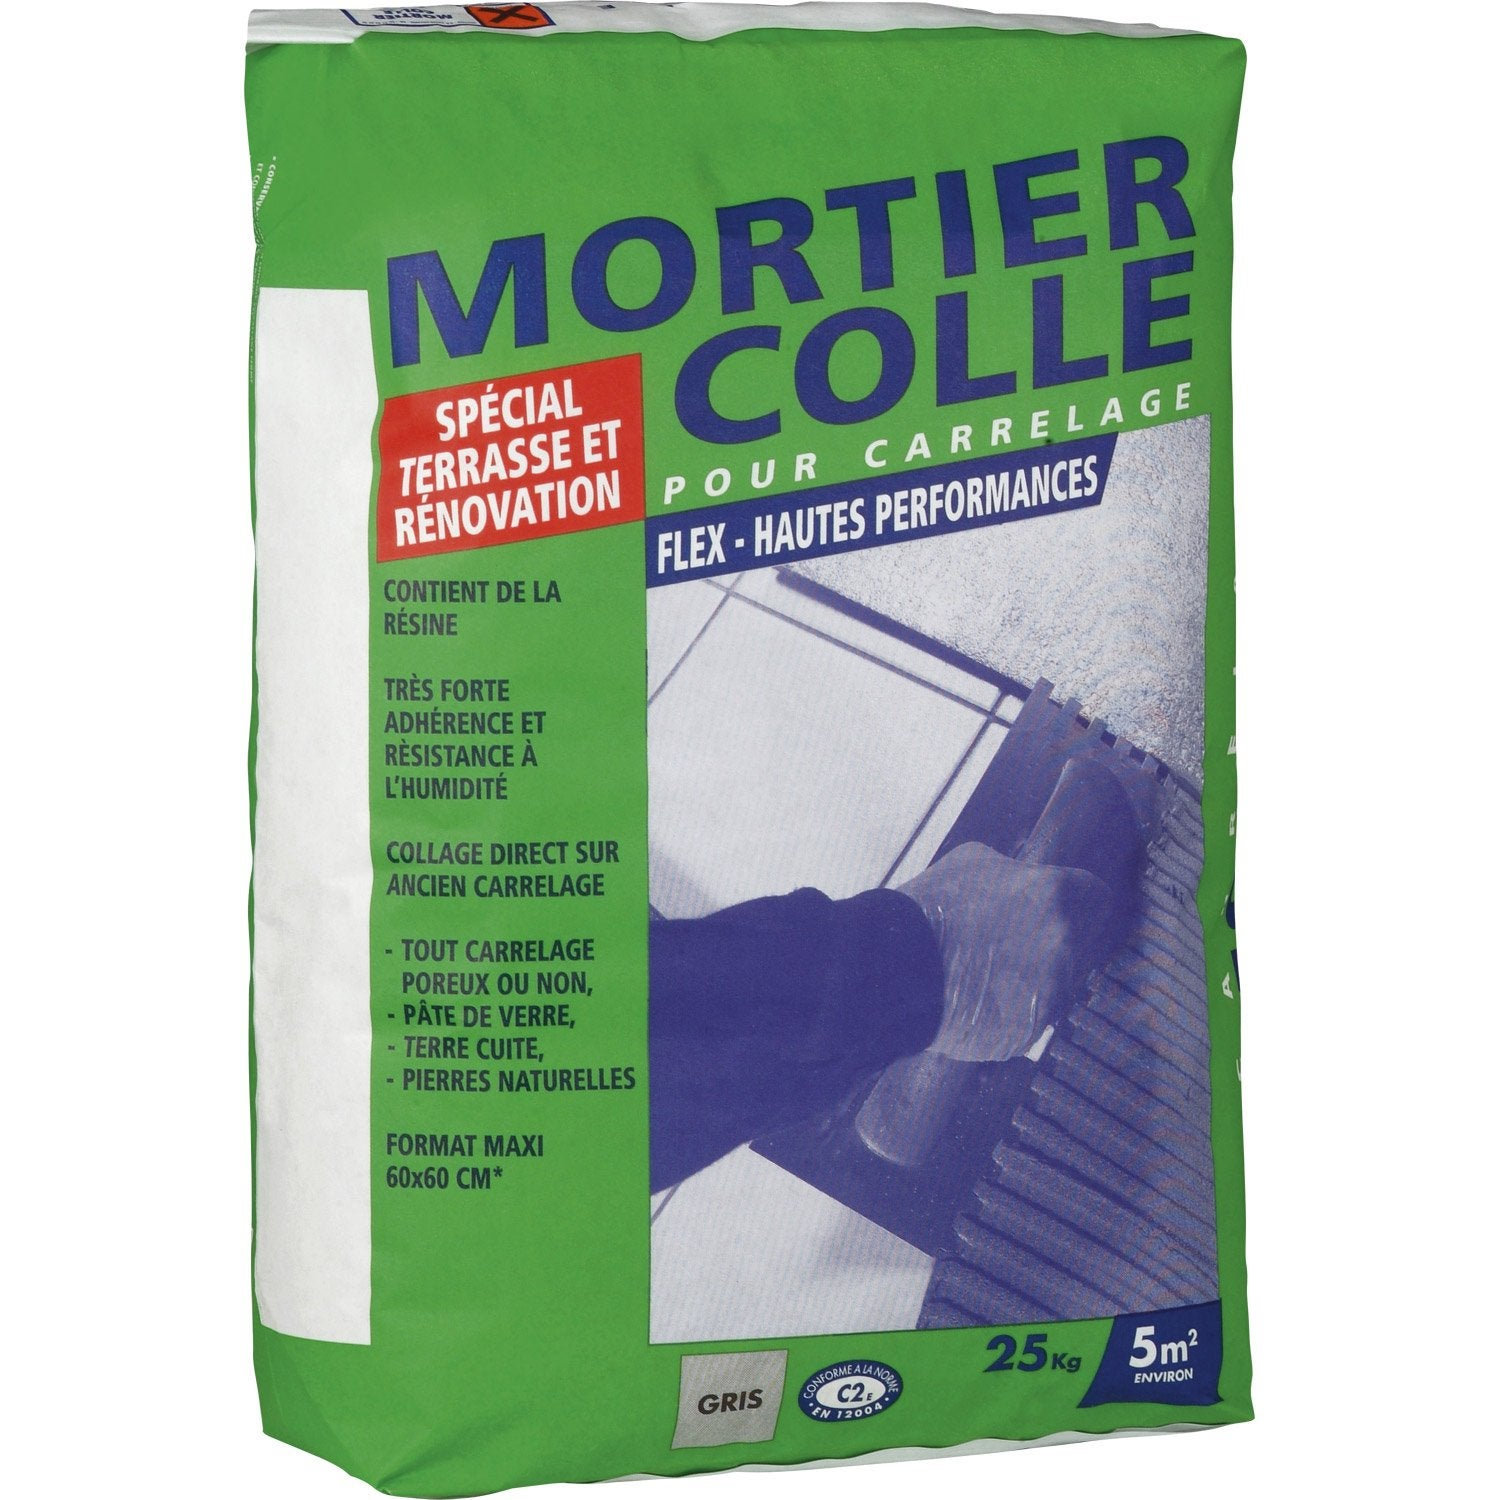 Mortier colle flex gris 25 kg leroy merlin for Colle pour coller carrelage sur carrelage